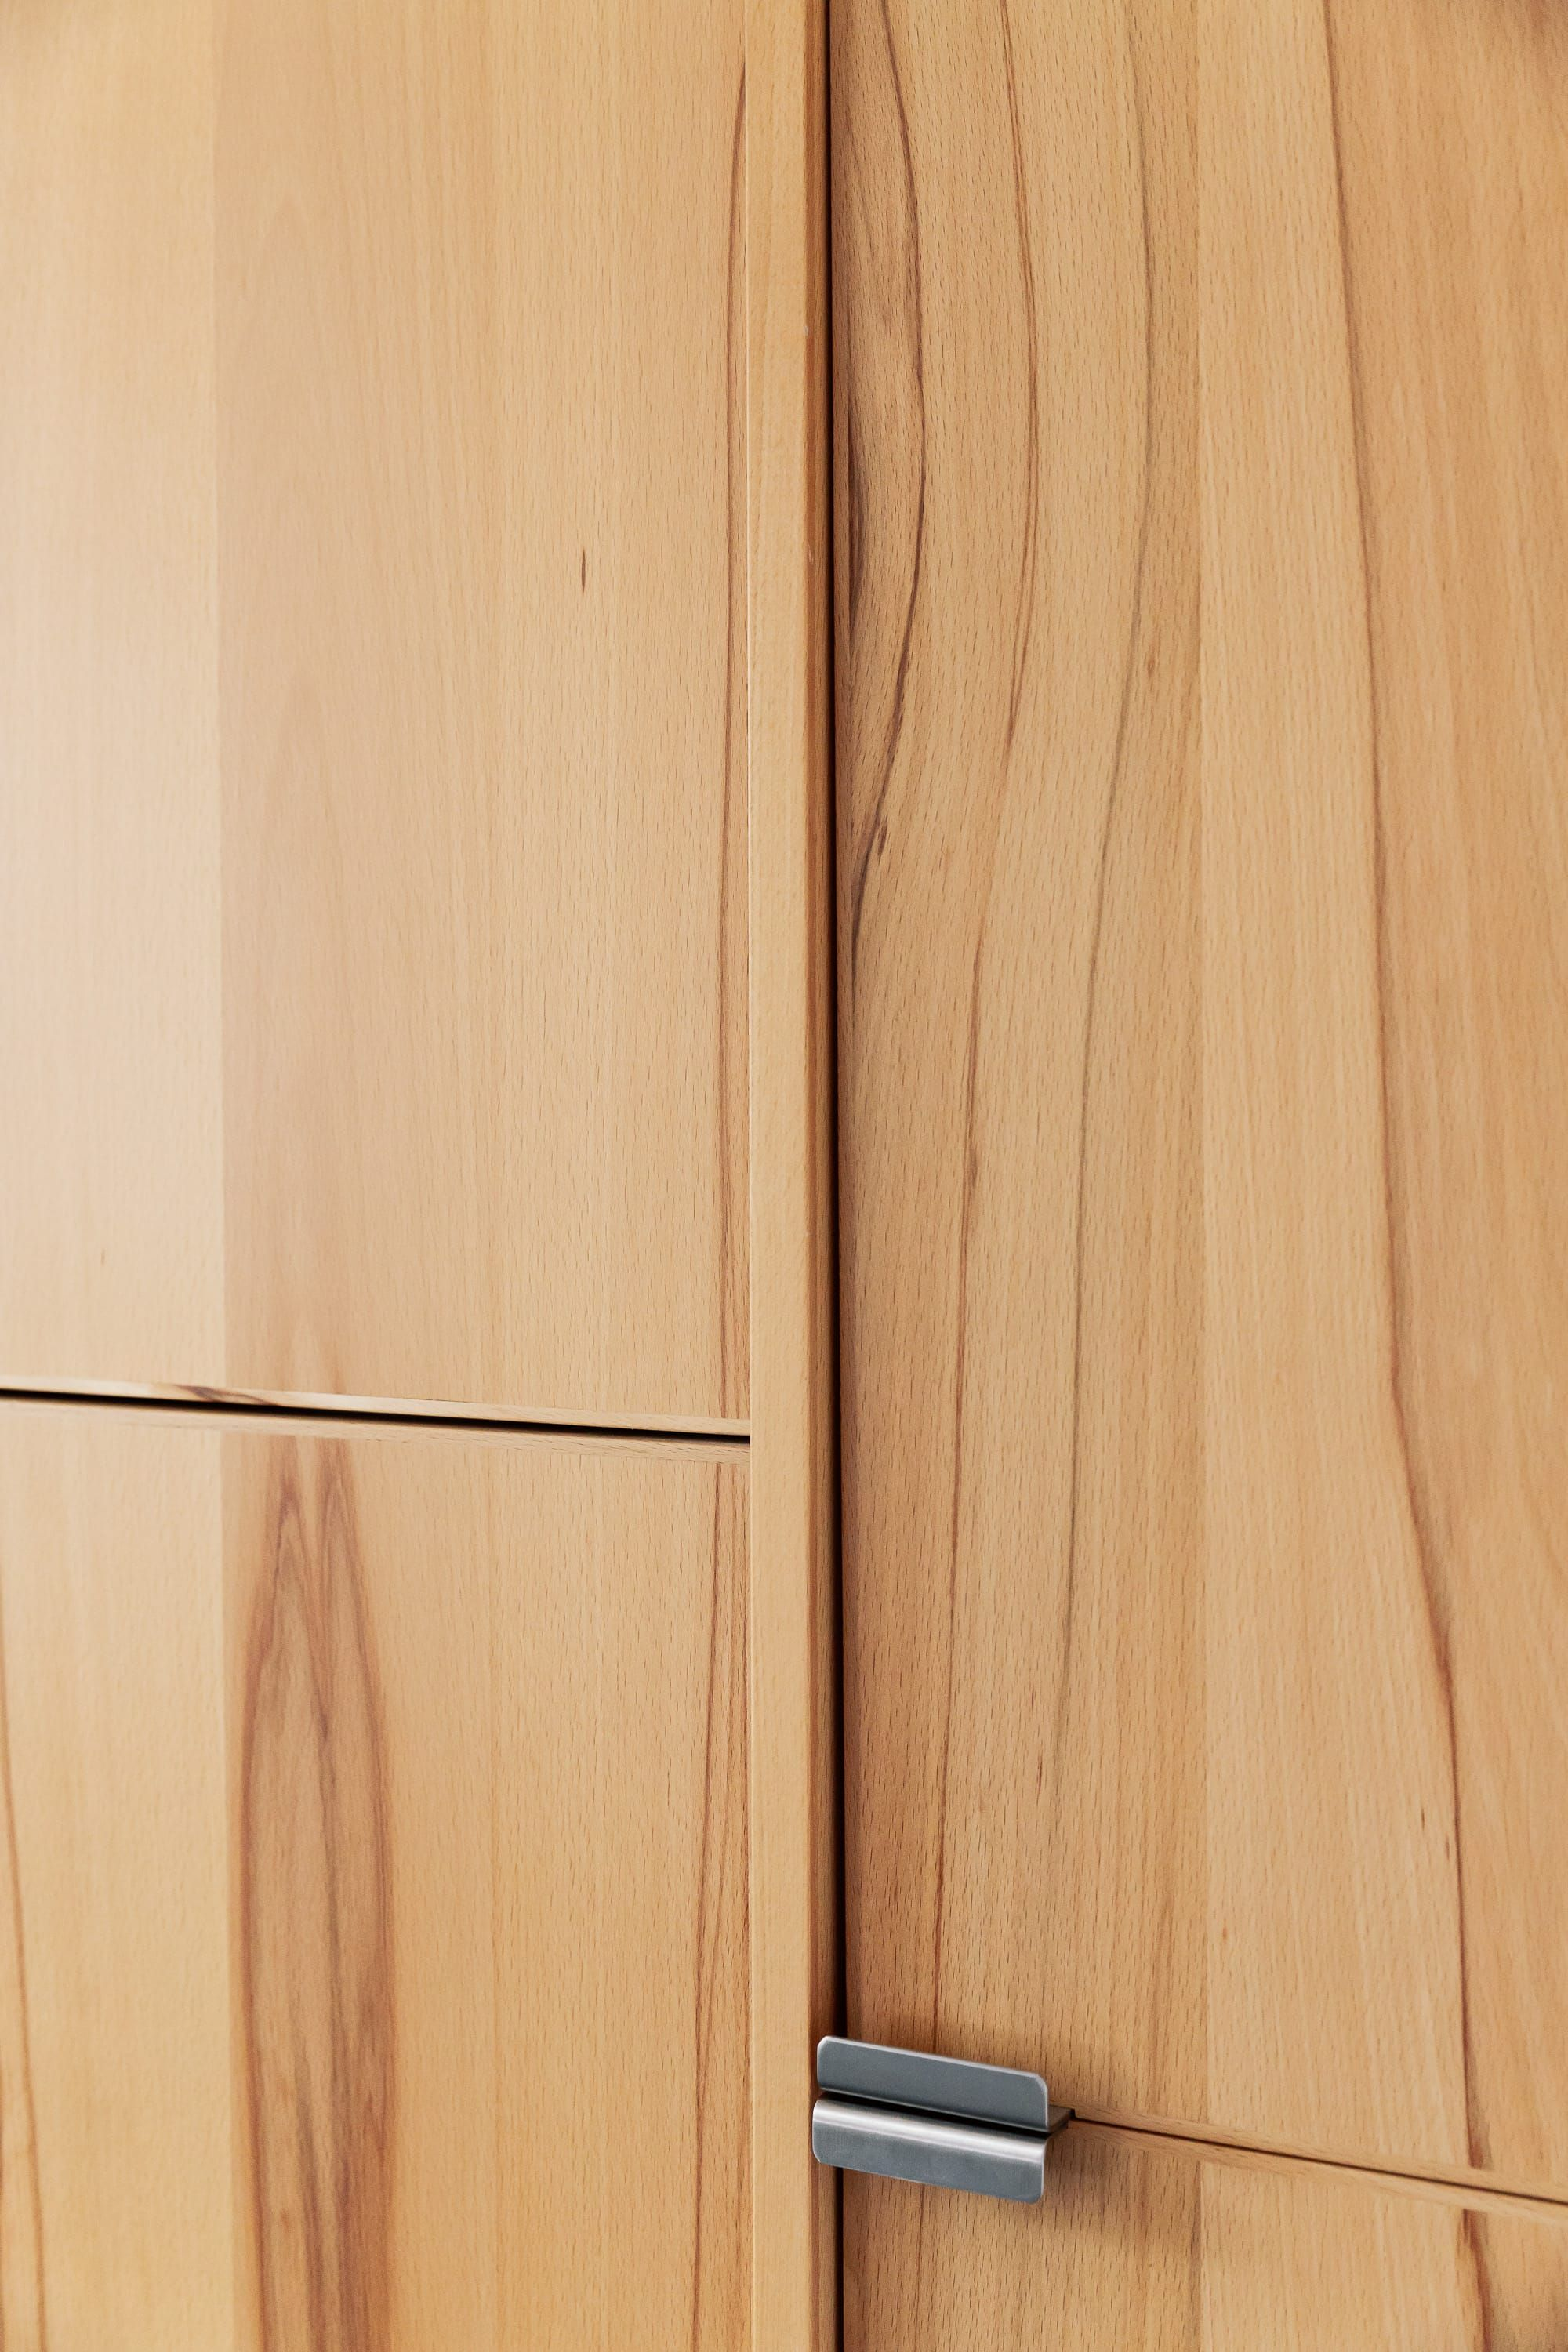 Steamed beech cabinetry with stainless steel finger pull detail.